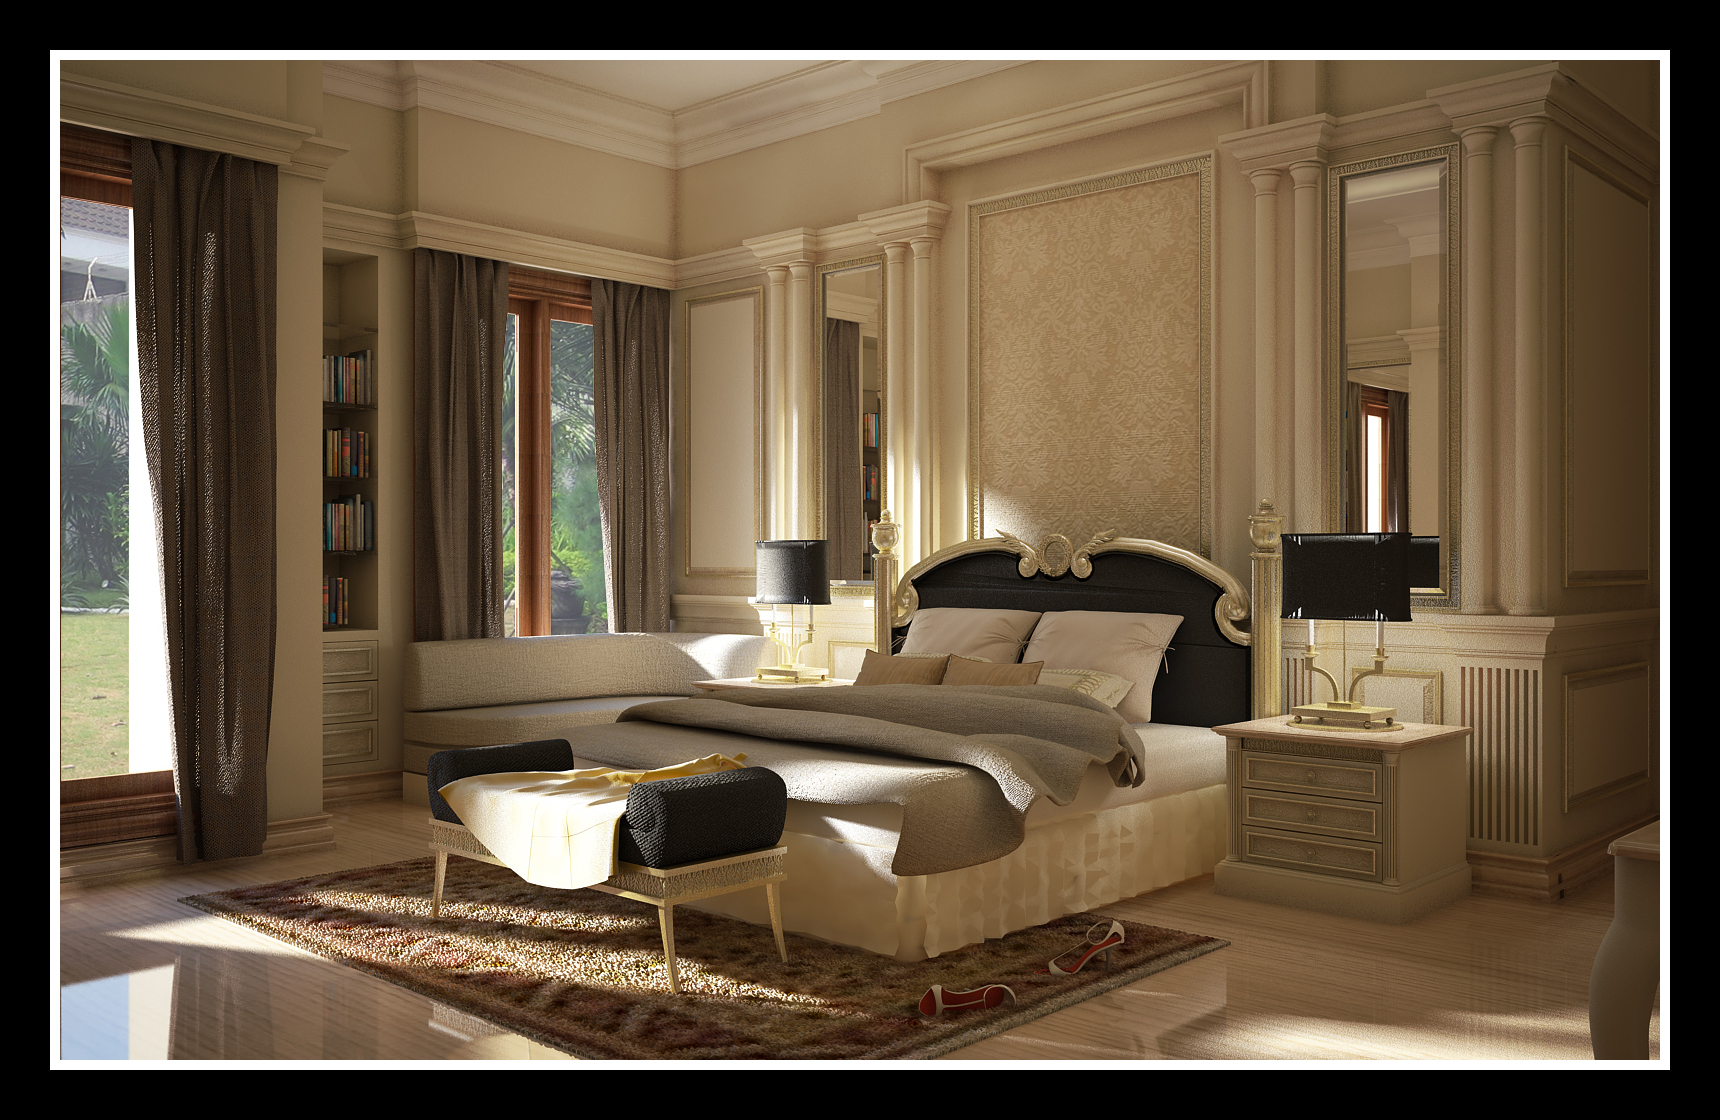 Fabulous Classic Bedroom Design Ideas 1720 x 1120 · 1344 kB · jpeg